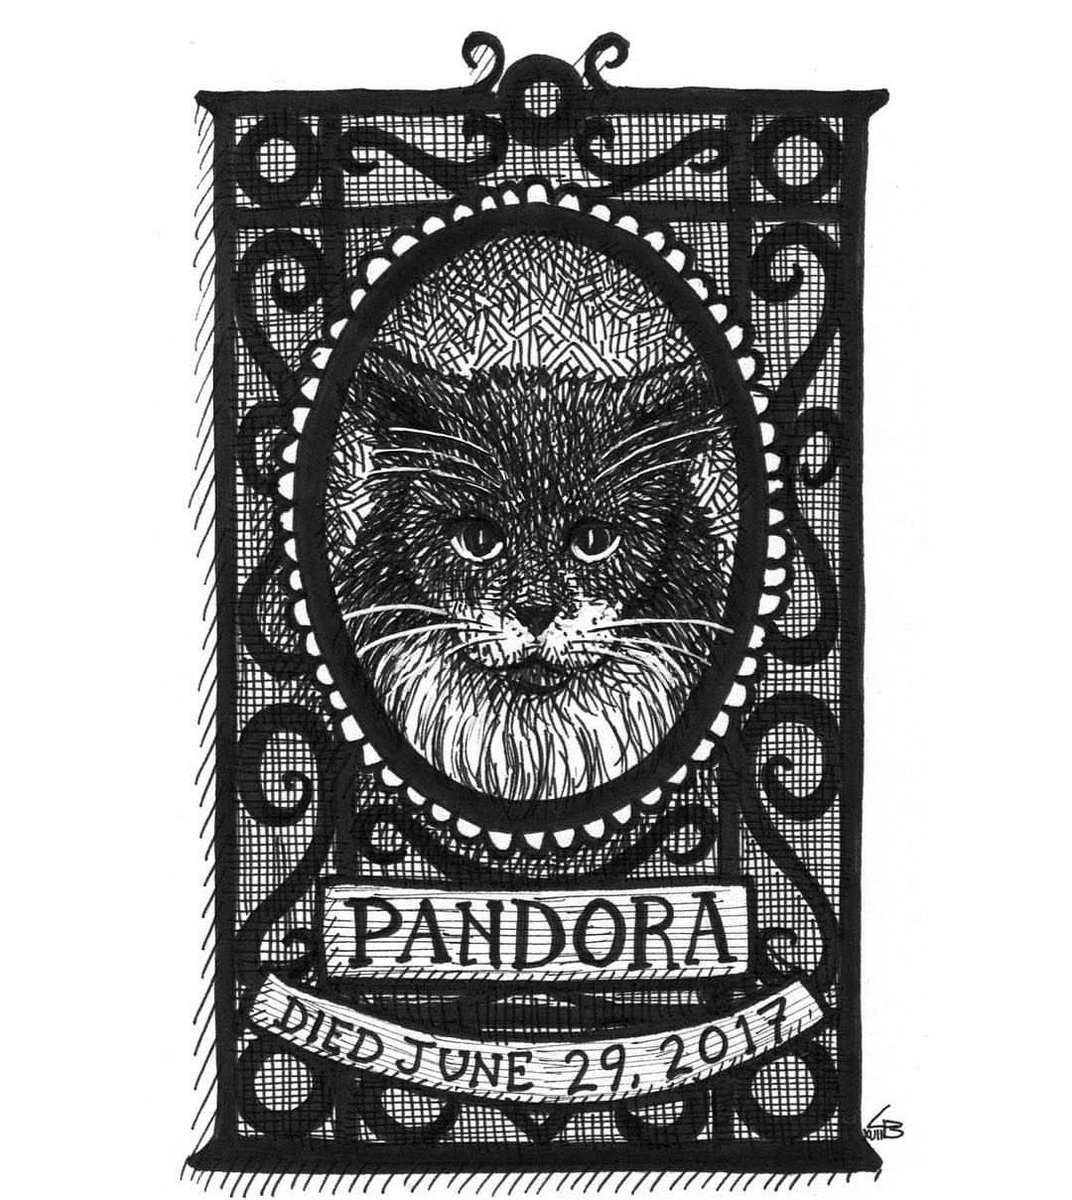 It is the anniversary of my dear Pandora's death. My heart aches 🖤 Art by @LandisBlair